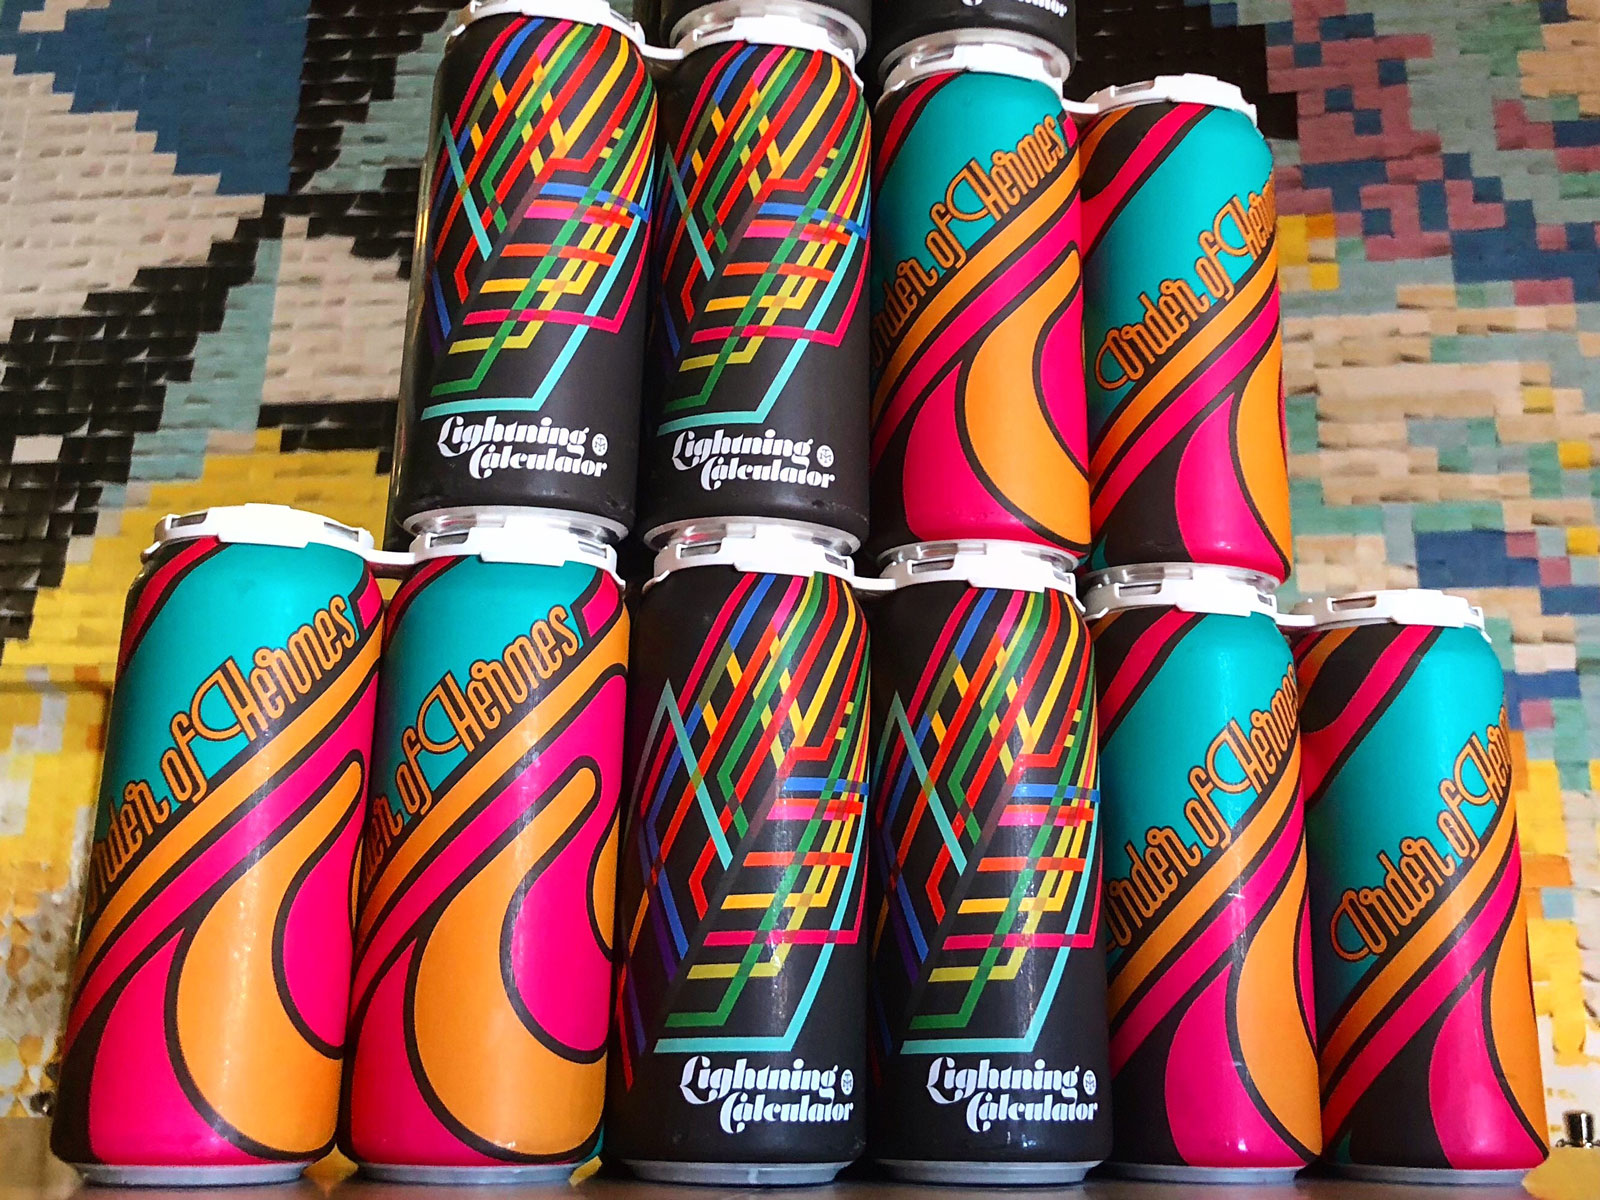 18 of the Coolest-Looking Beer Cans You'll Ever See